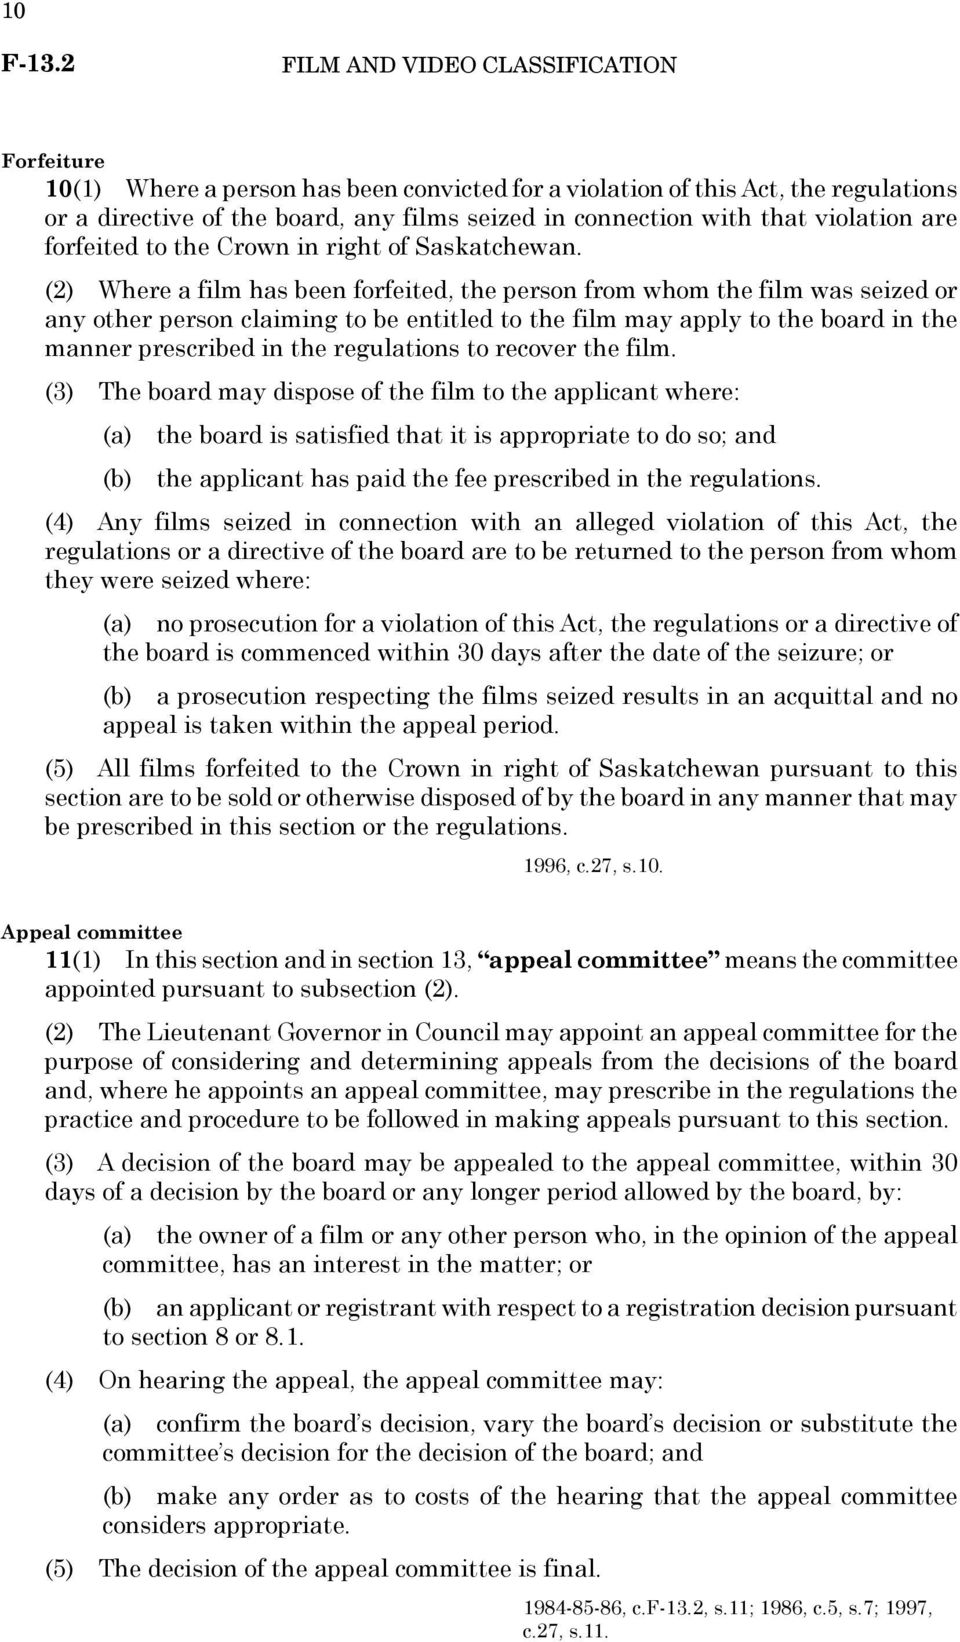 (2) Where a film has been forfeited, the person from whom the film was seized or any other person claiming to be entitled to the film may apply to the board in the manner prescribed in the